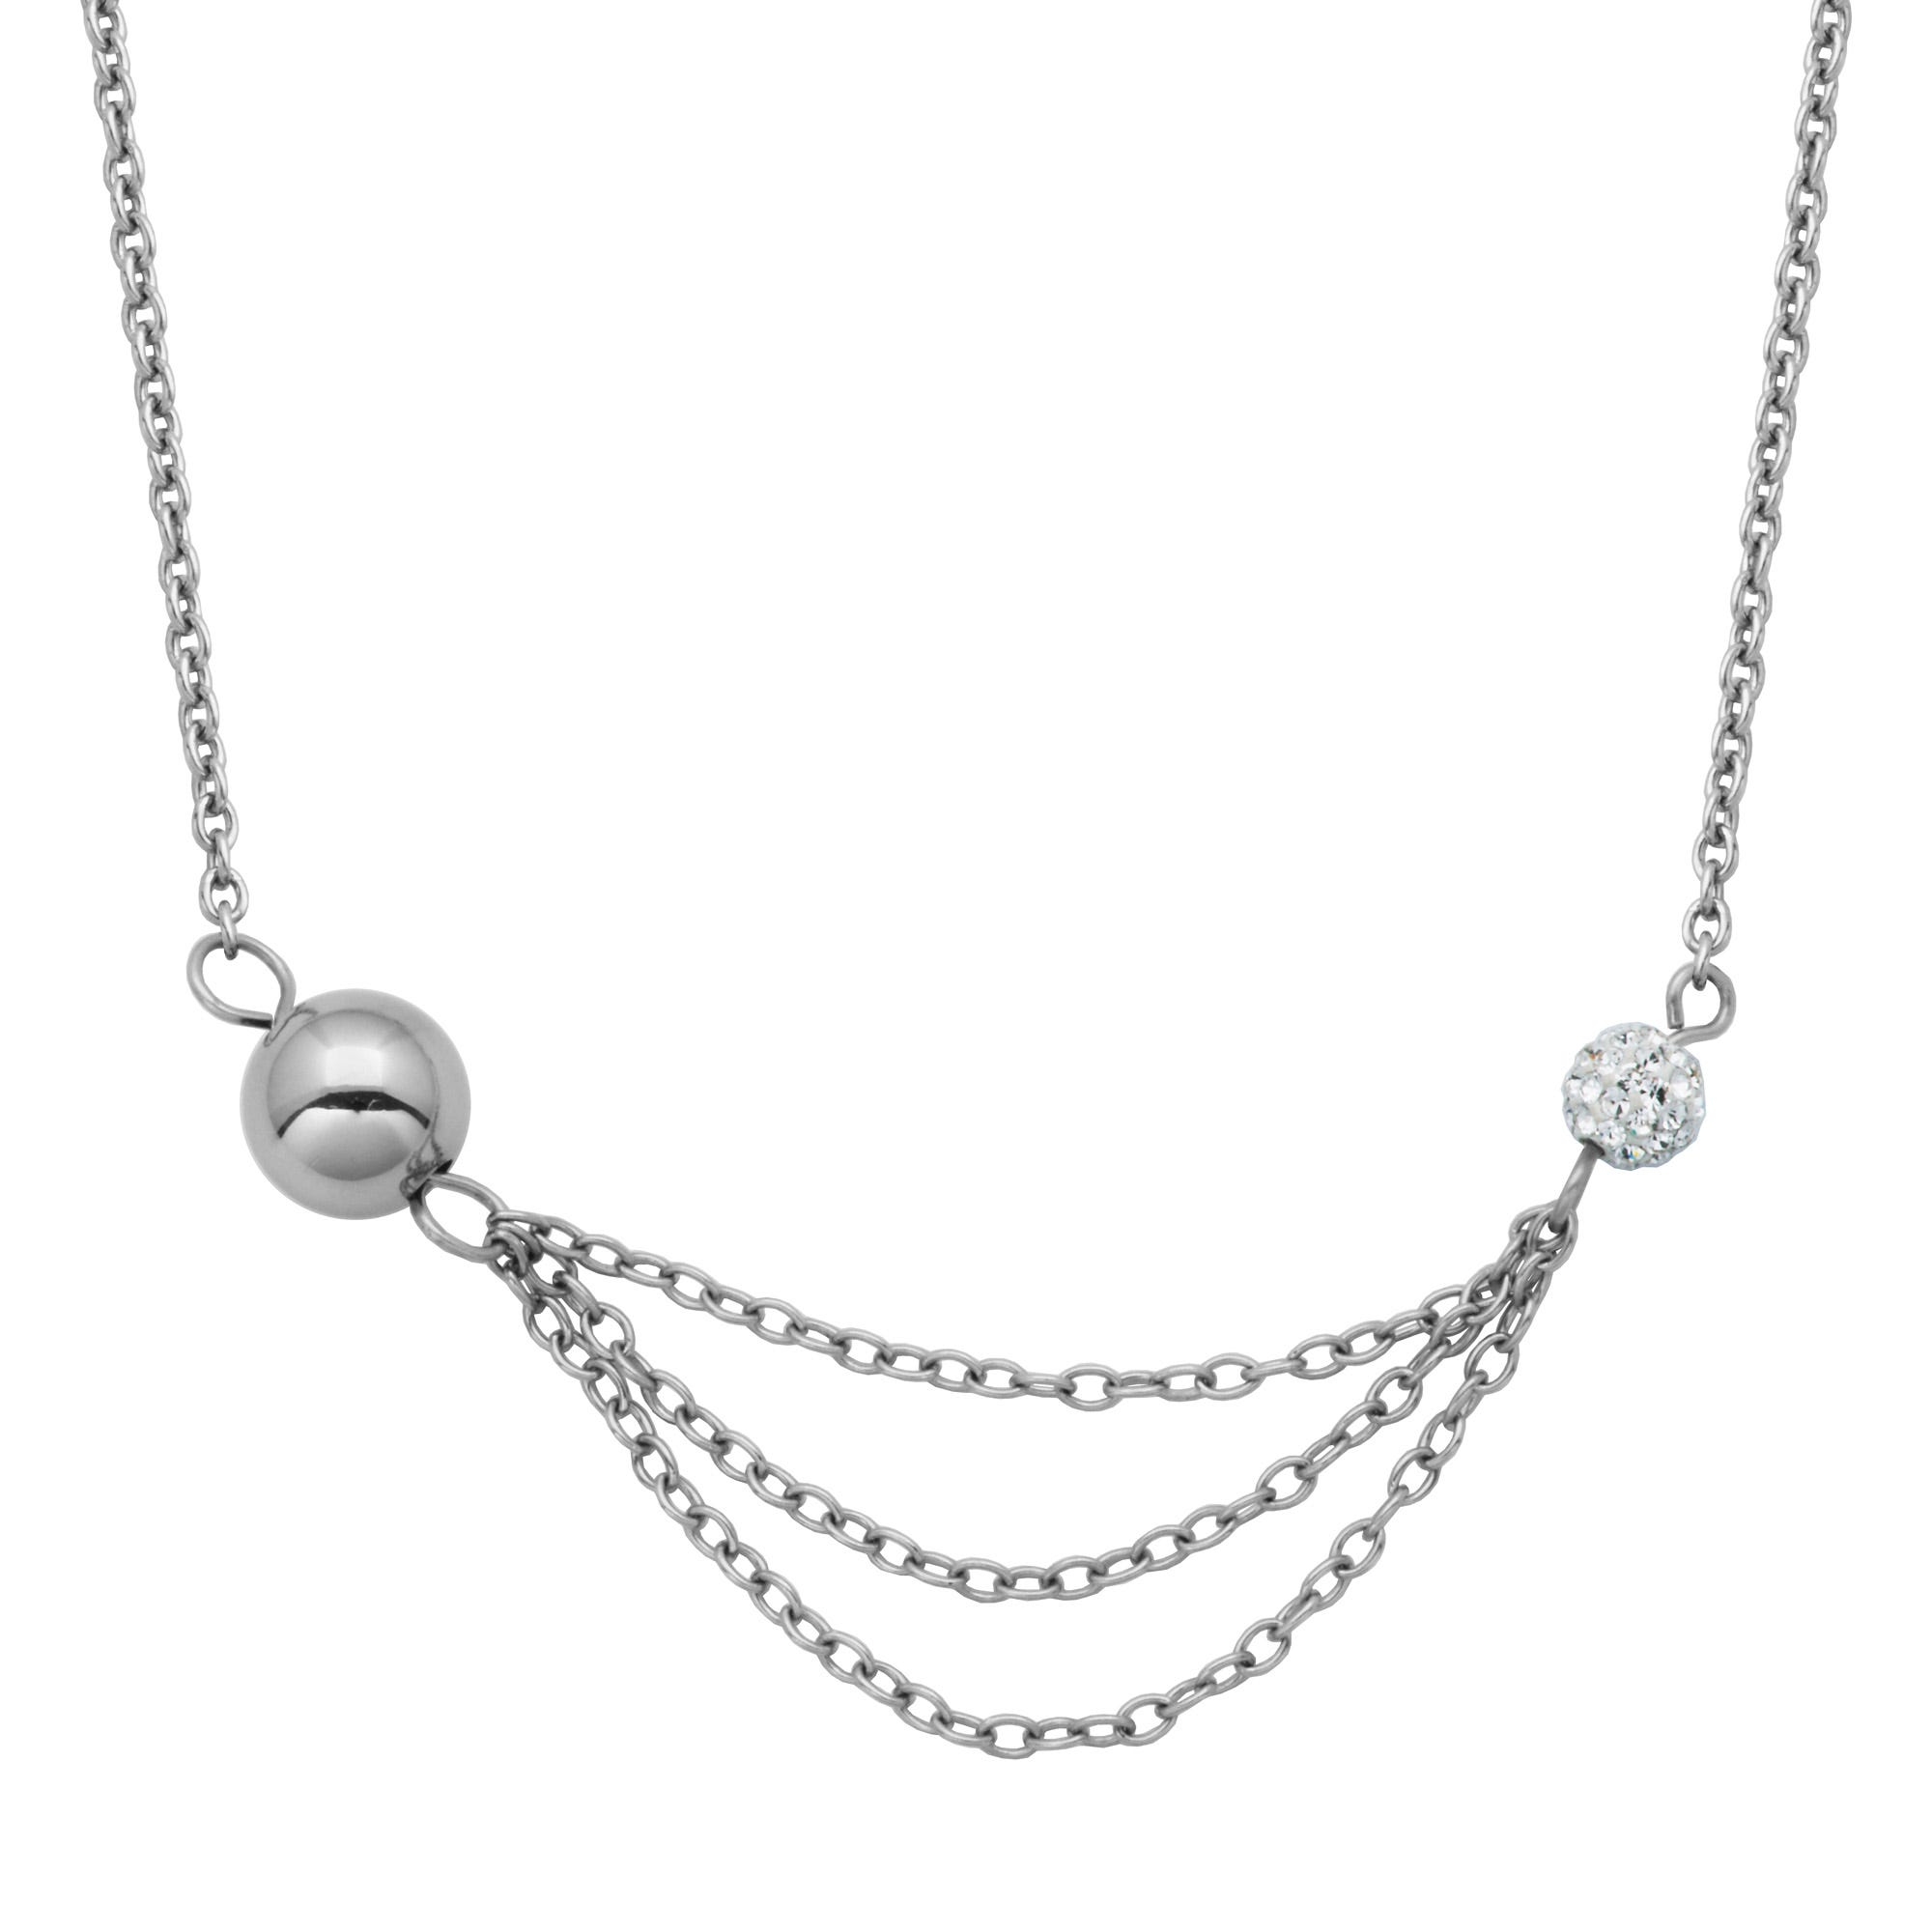 Multi-Chain Fashion Necklace with Crystals in Stainless Steel